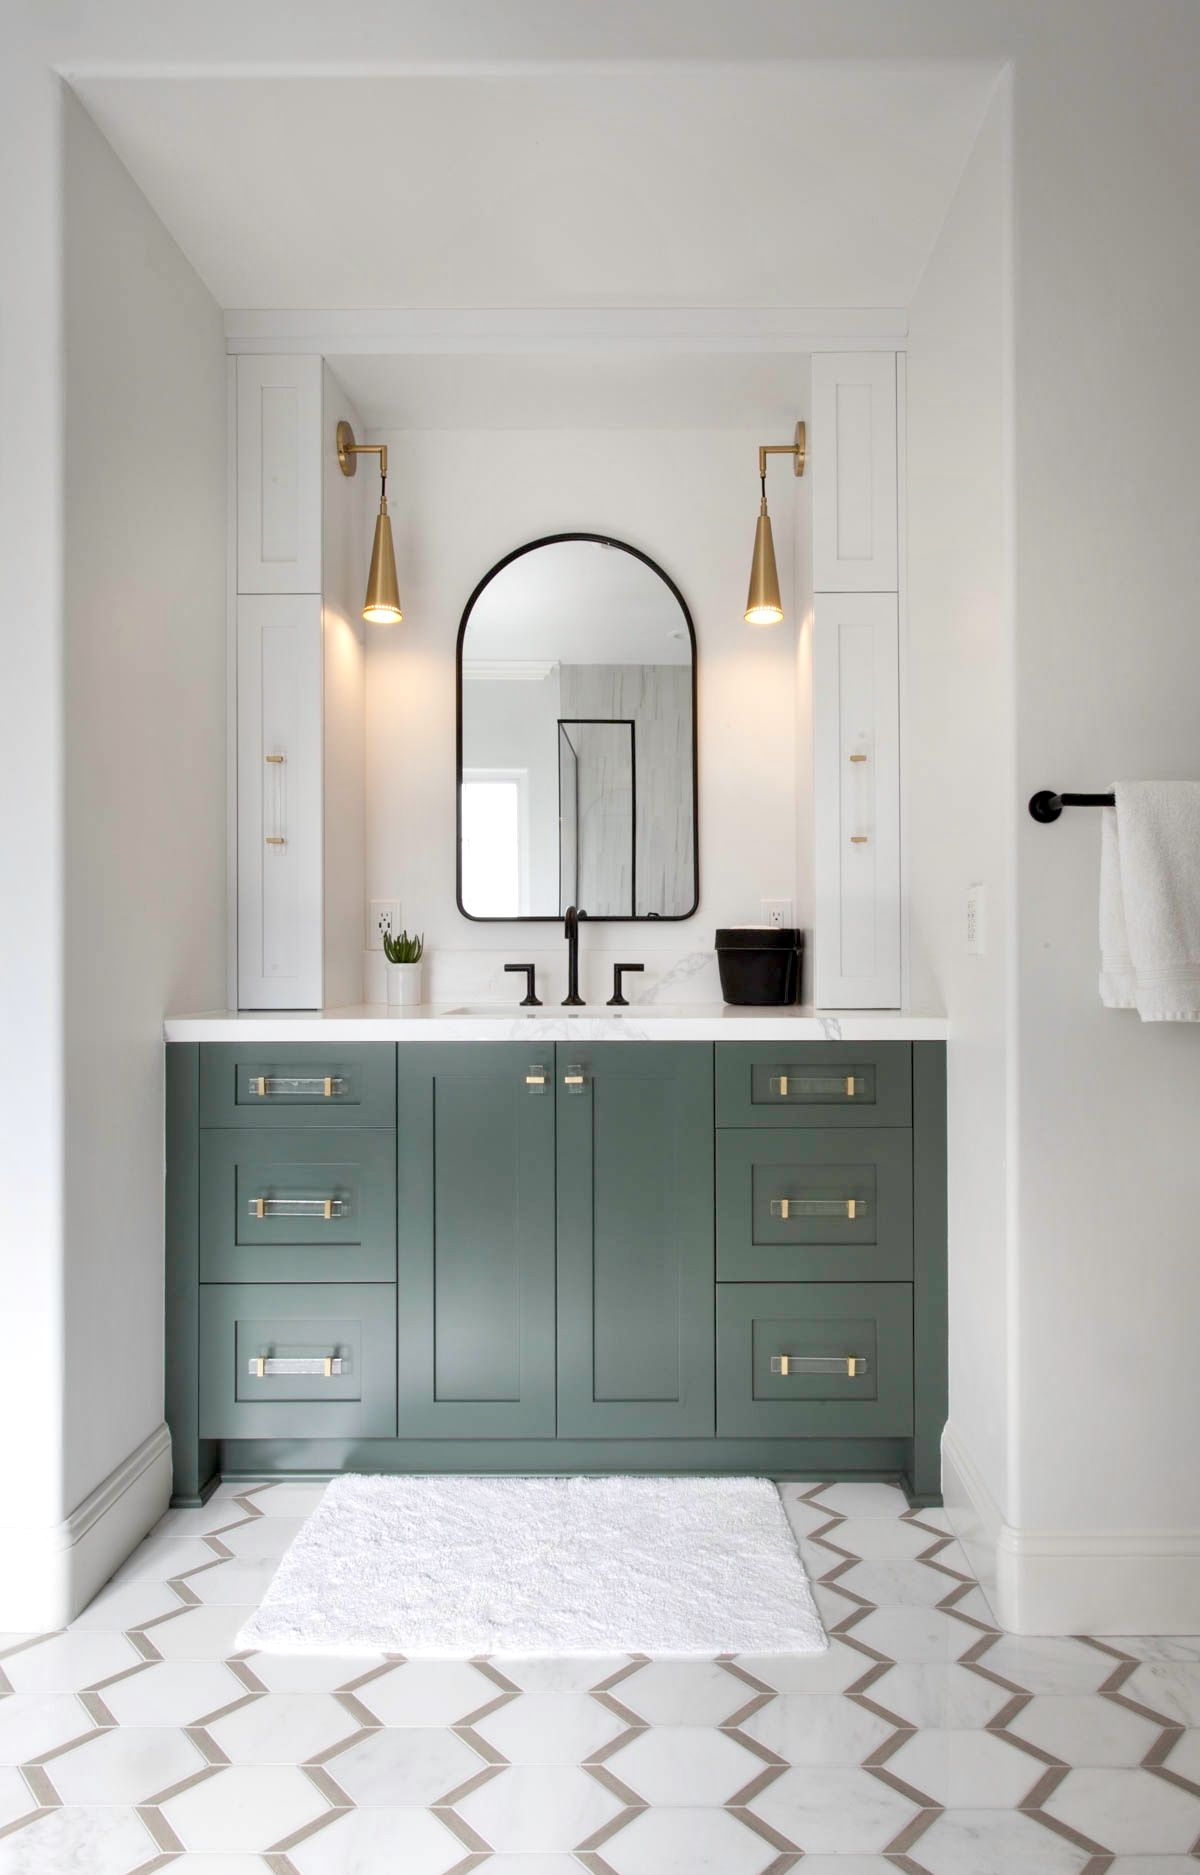 Forest Vanity Small Bathroom Makeover Master Bathroom Renovation Bathroom Makeover [ 1875 x 1200 Pixel ]